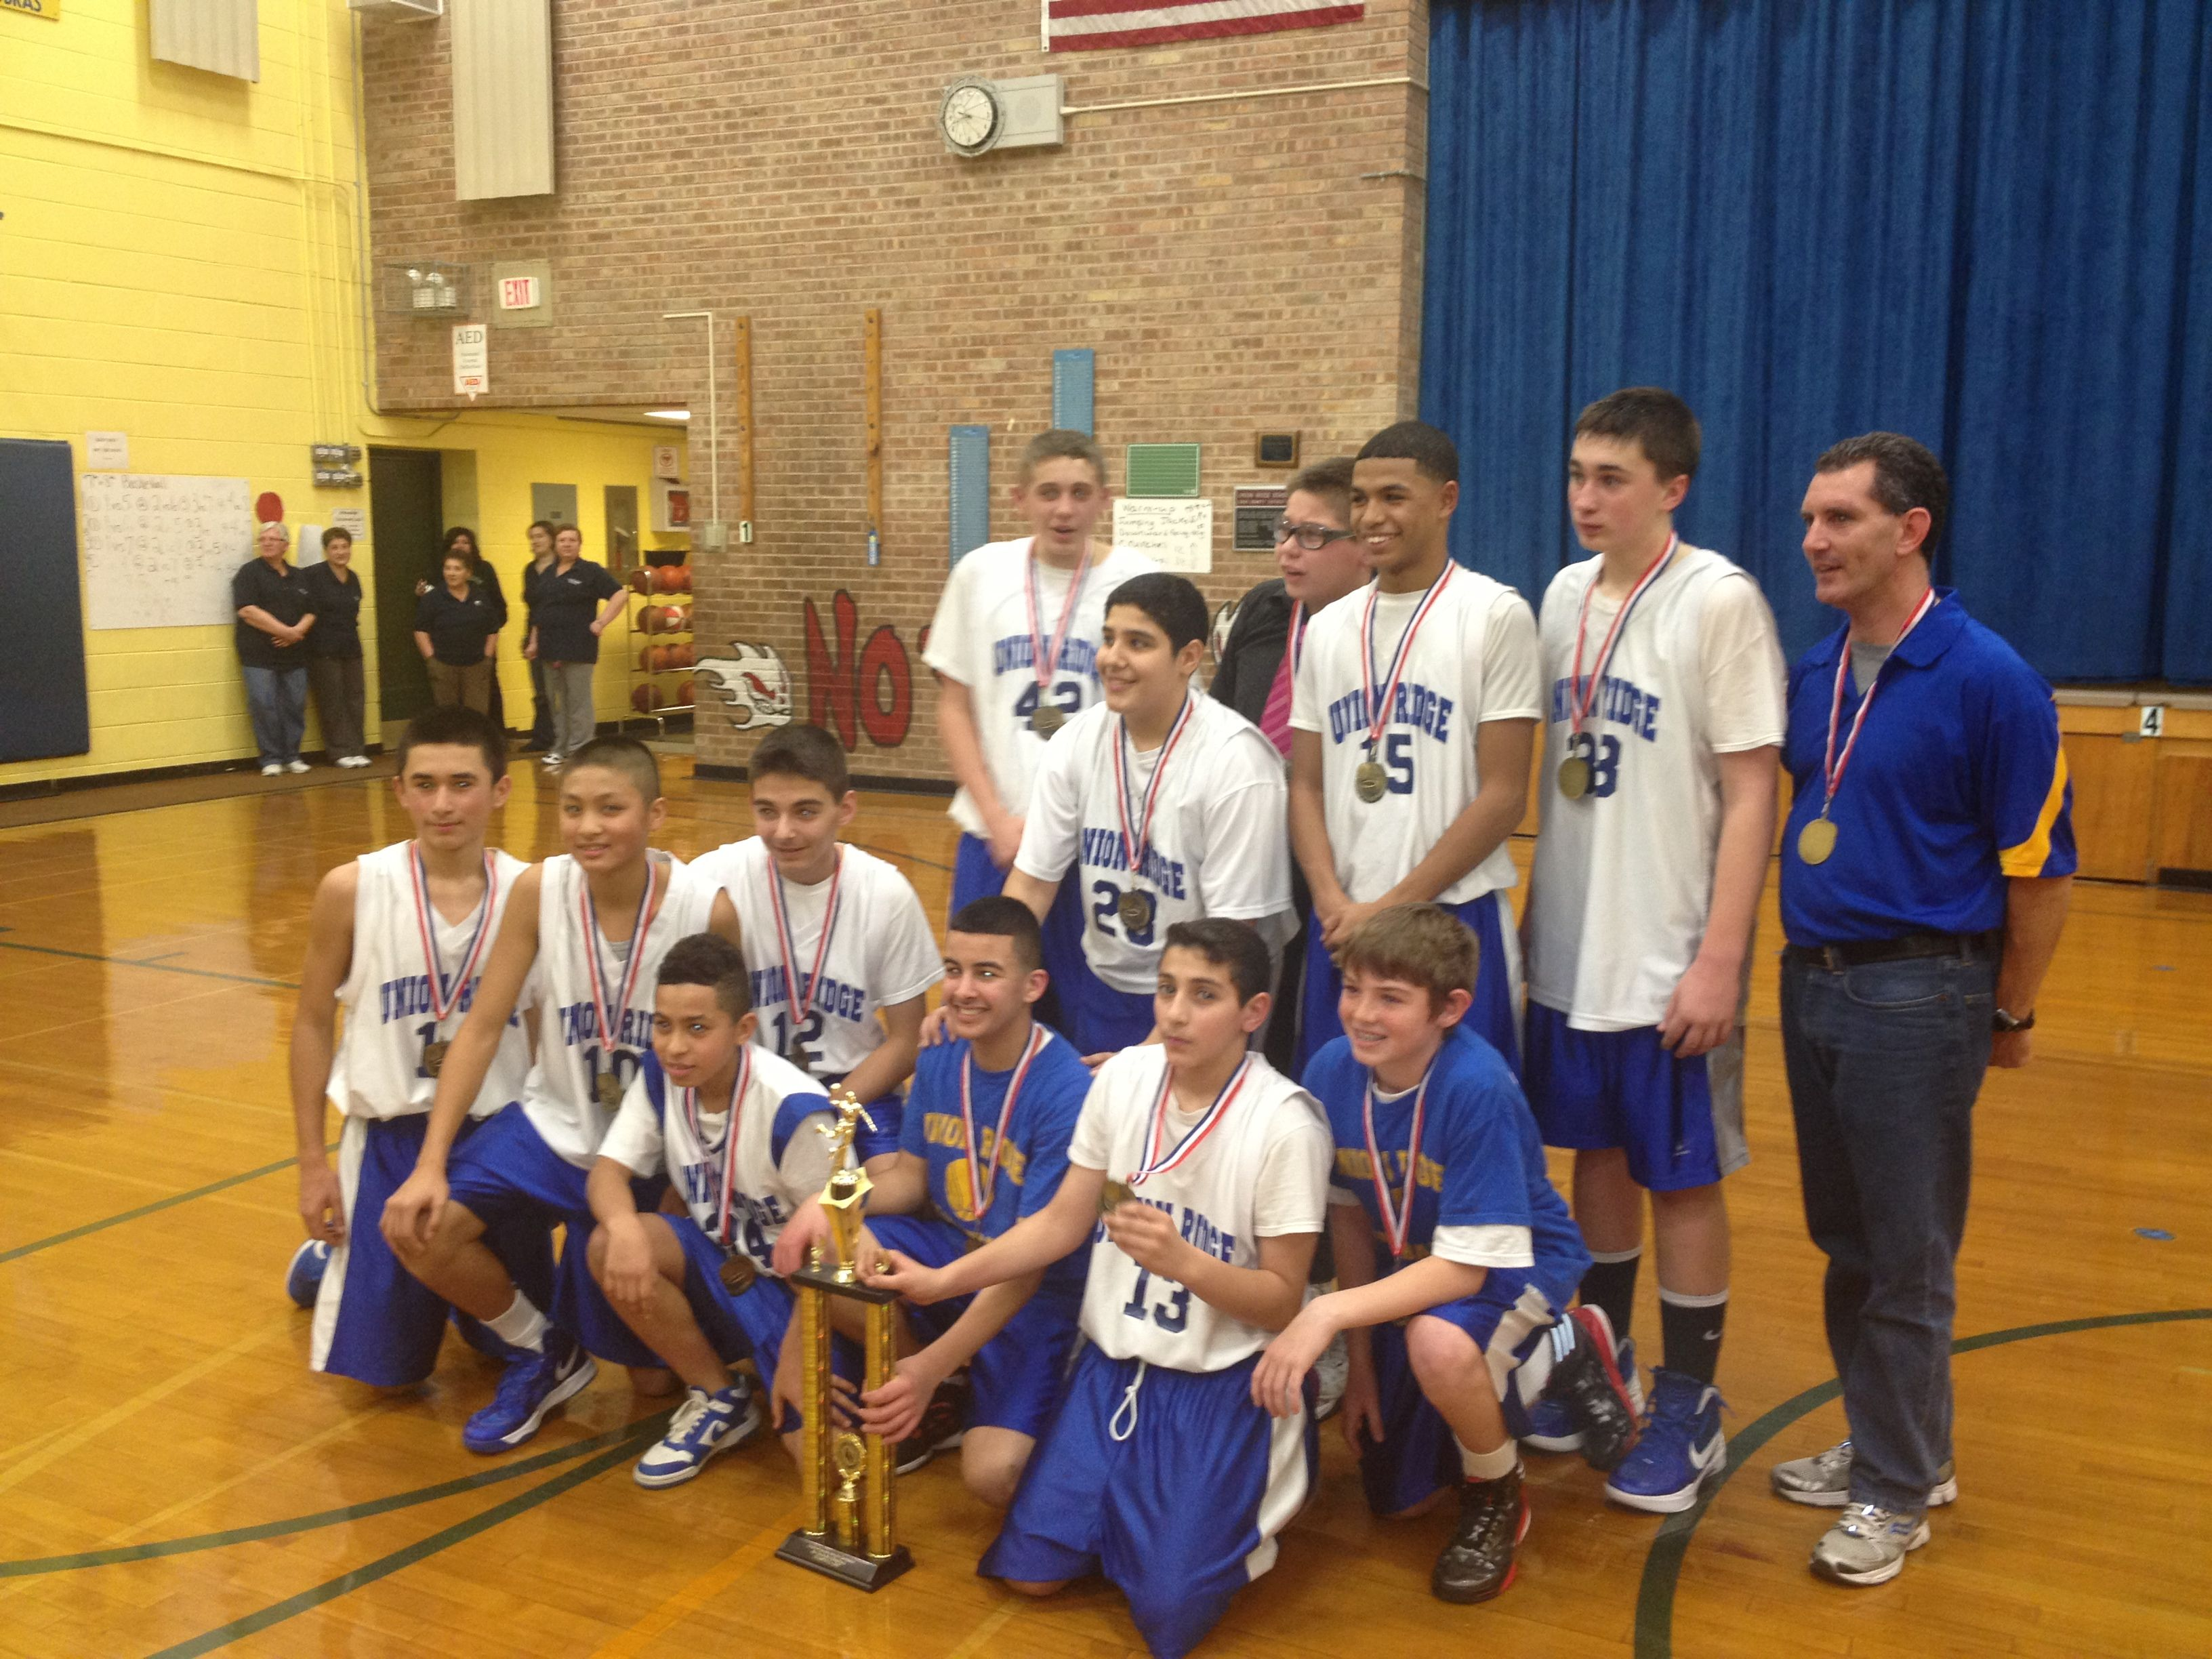 Boy Basketball Champions